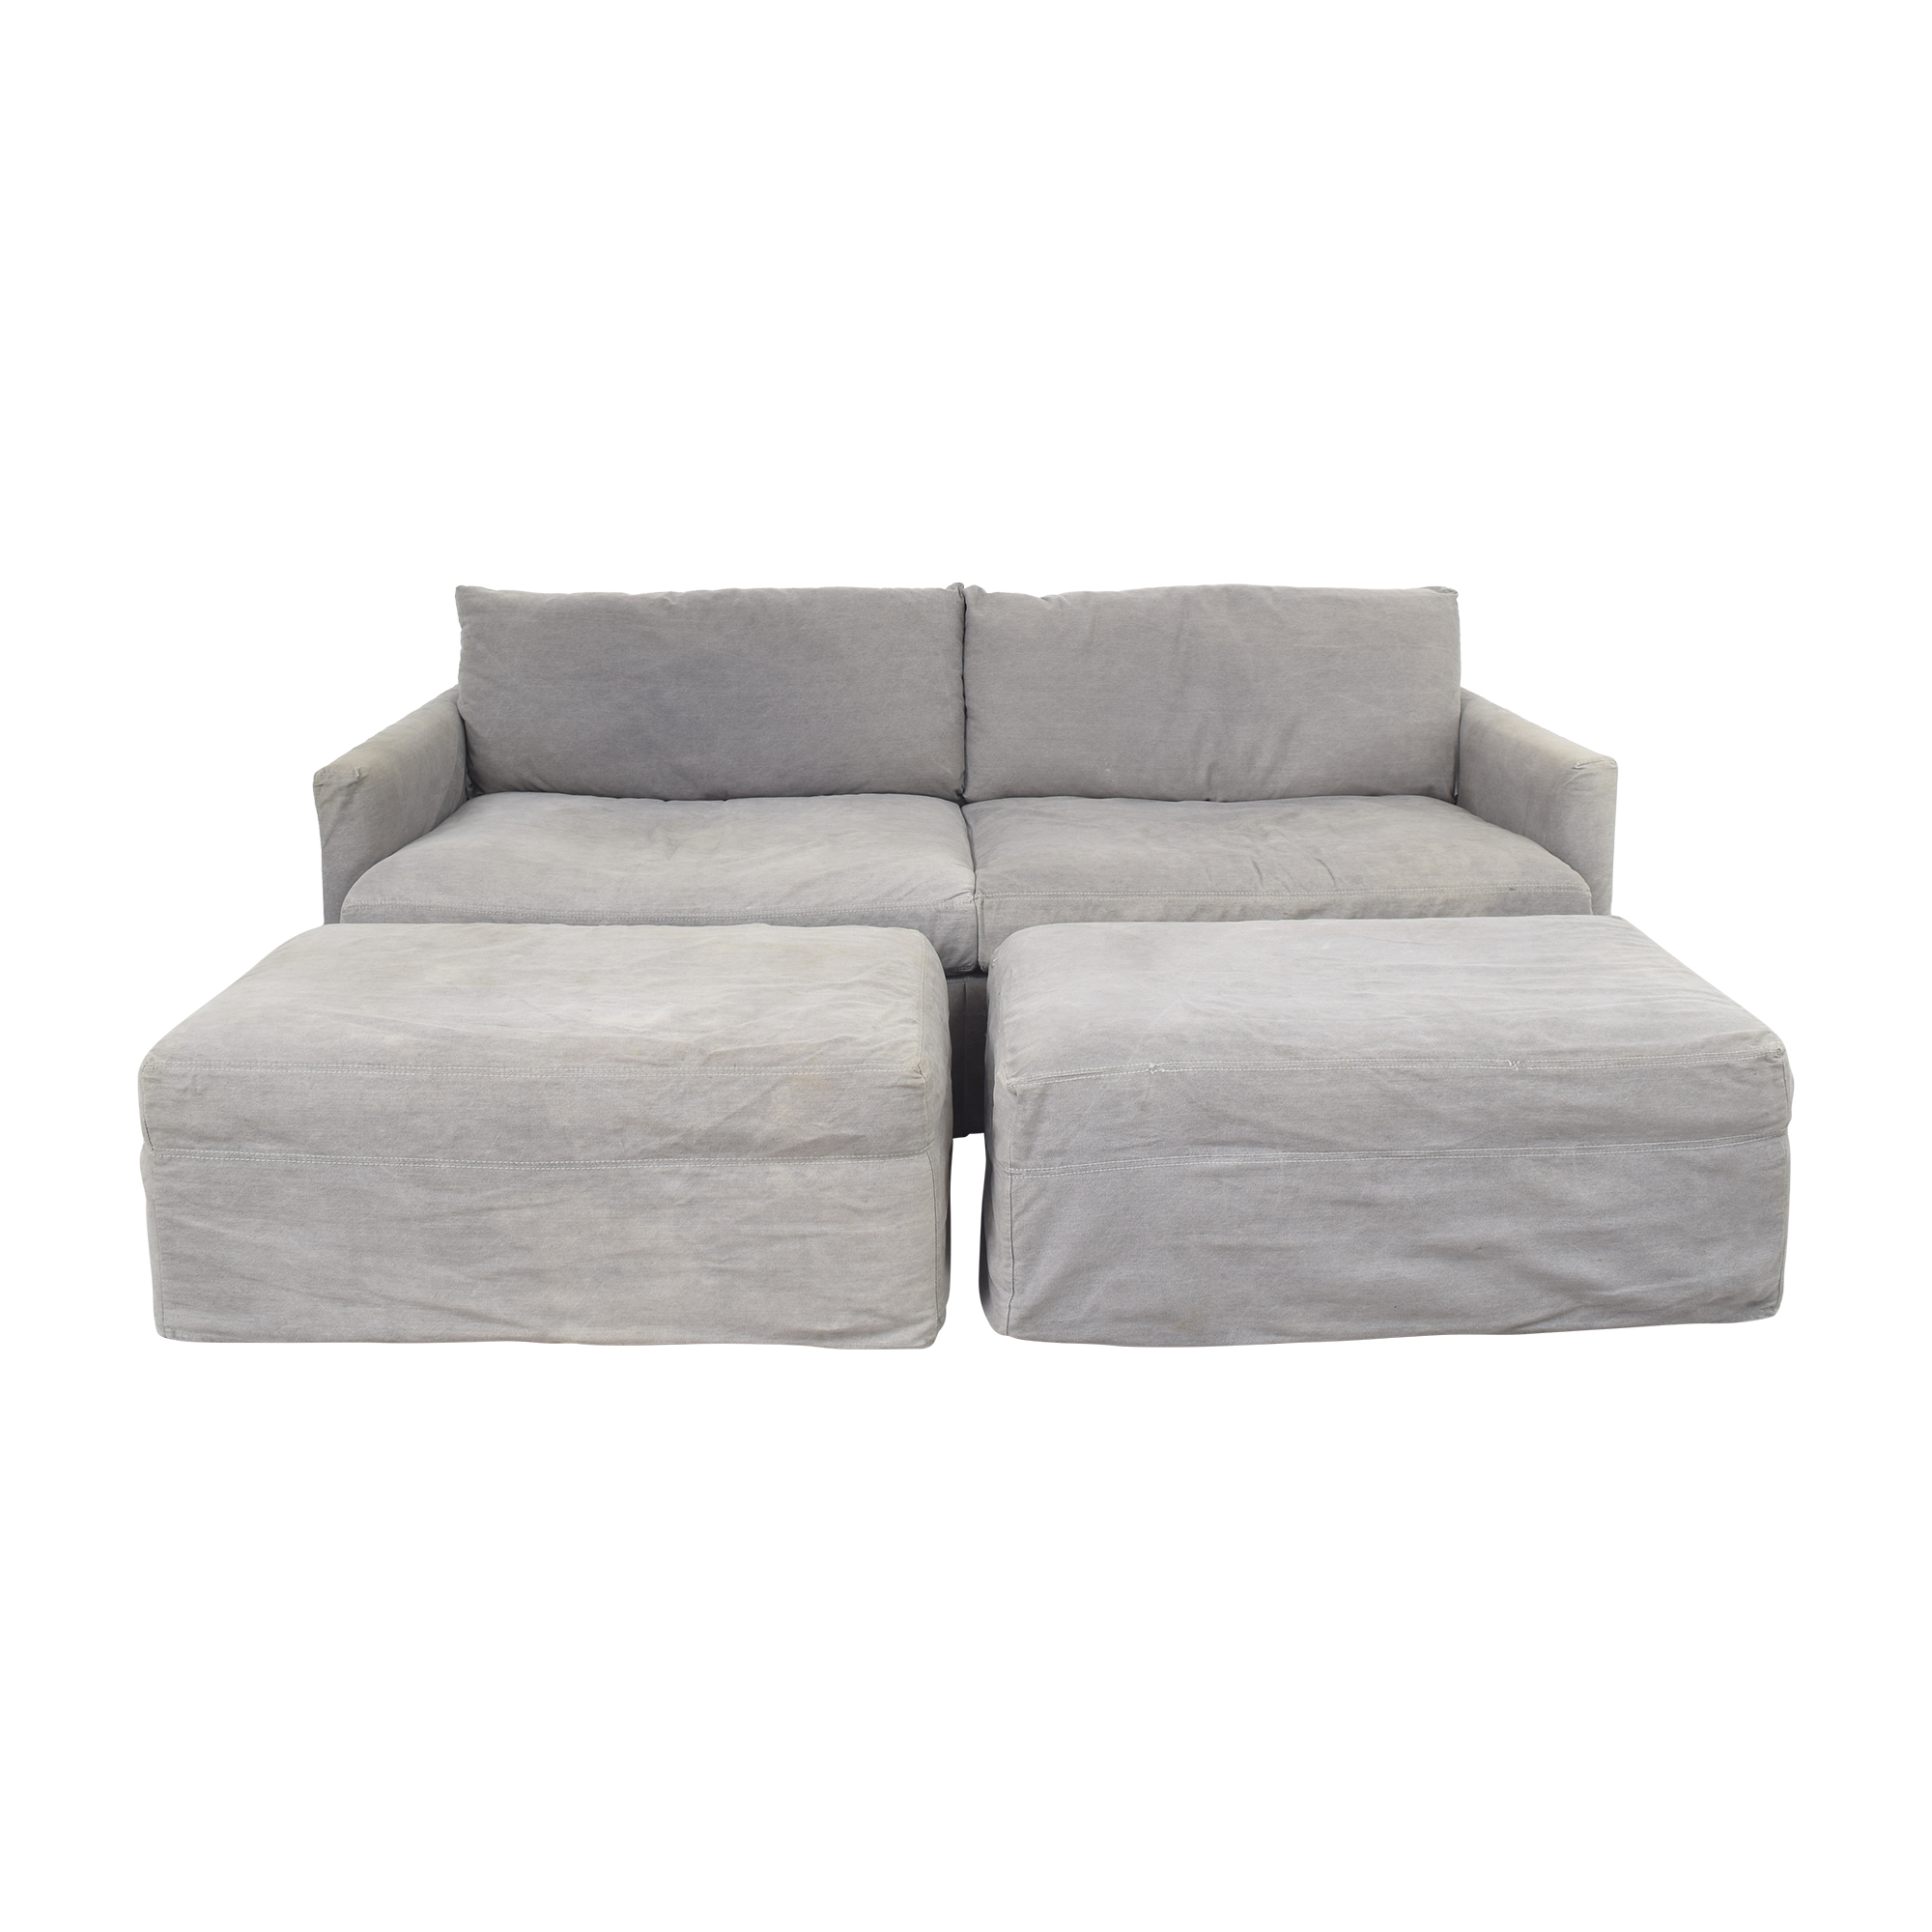 Crate & Barrel Crate & Barrel Lounge II Sofa with Two Ottomans on Casters nj